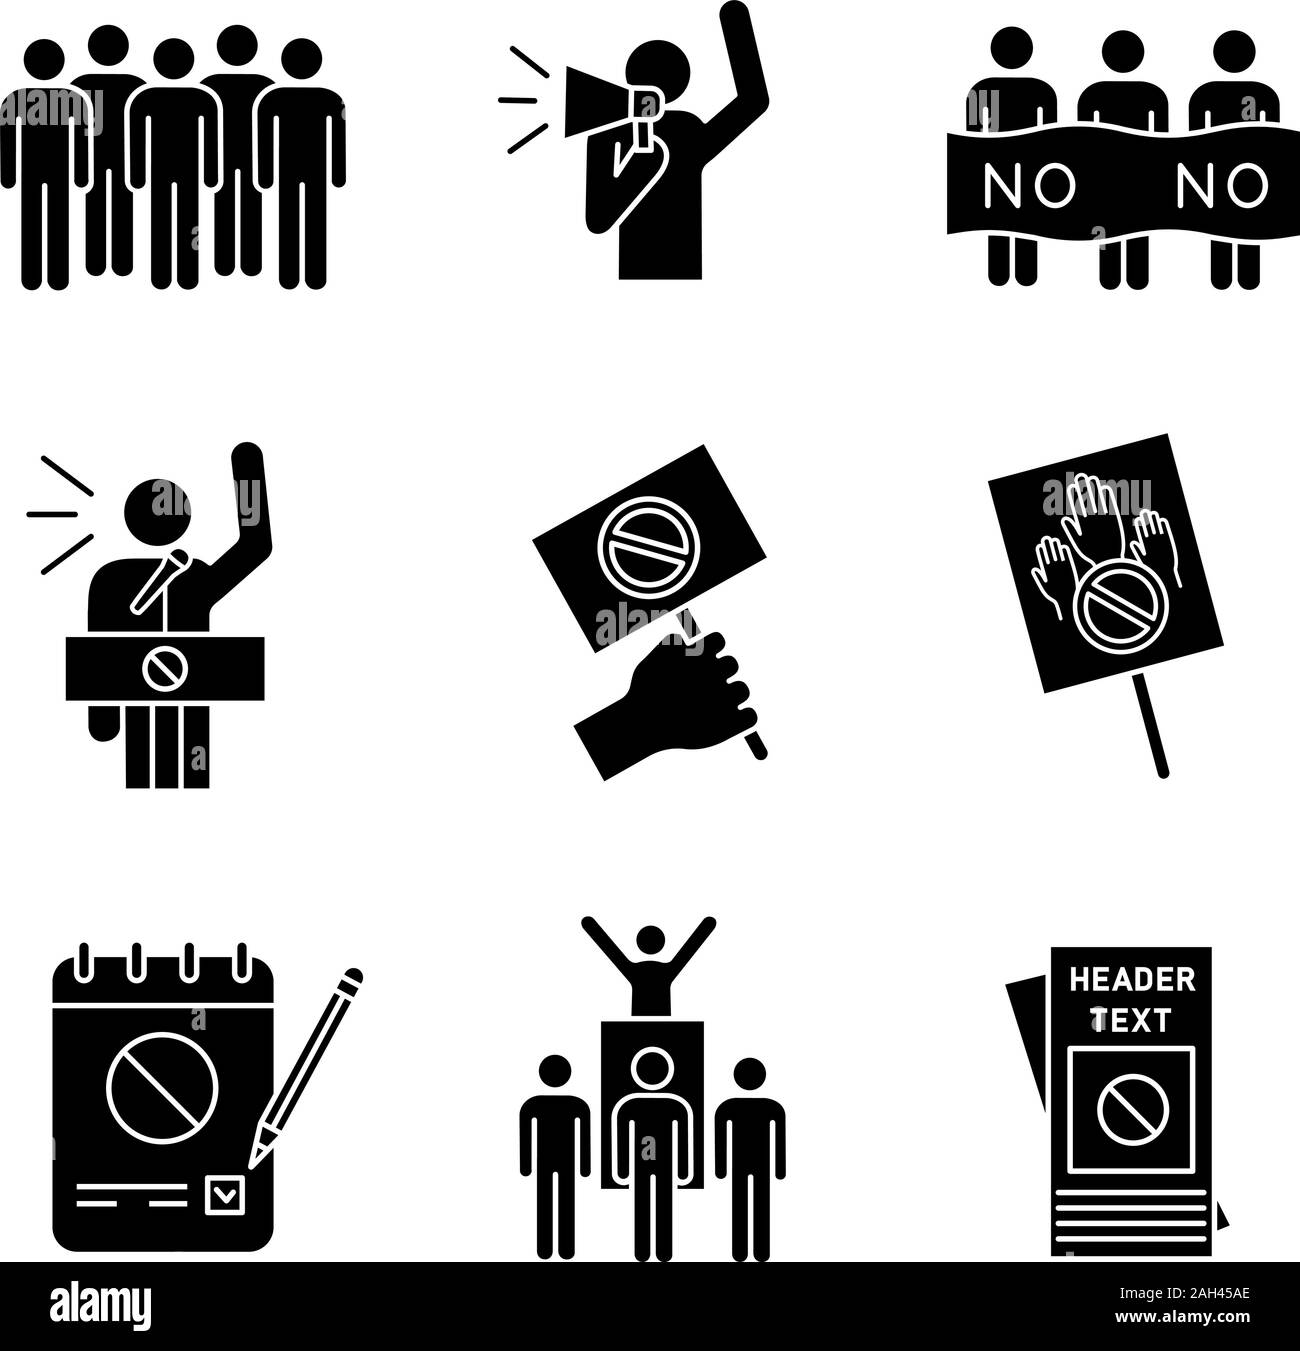 Protest action glyph icons set. Meeting, protester, picket, speech, banner, protest placard, petition, leader, leaflet. Silhouette symbols. Vector iso Stock Vector